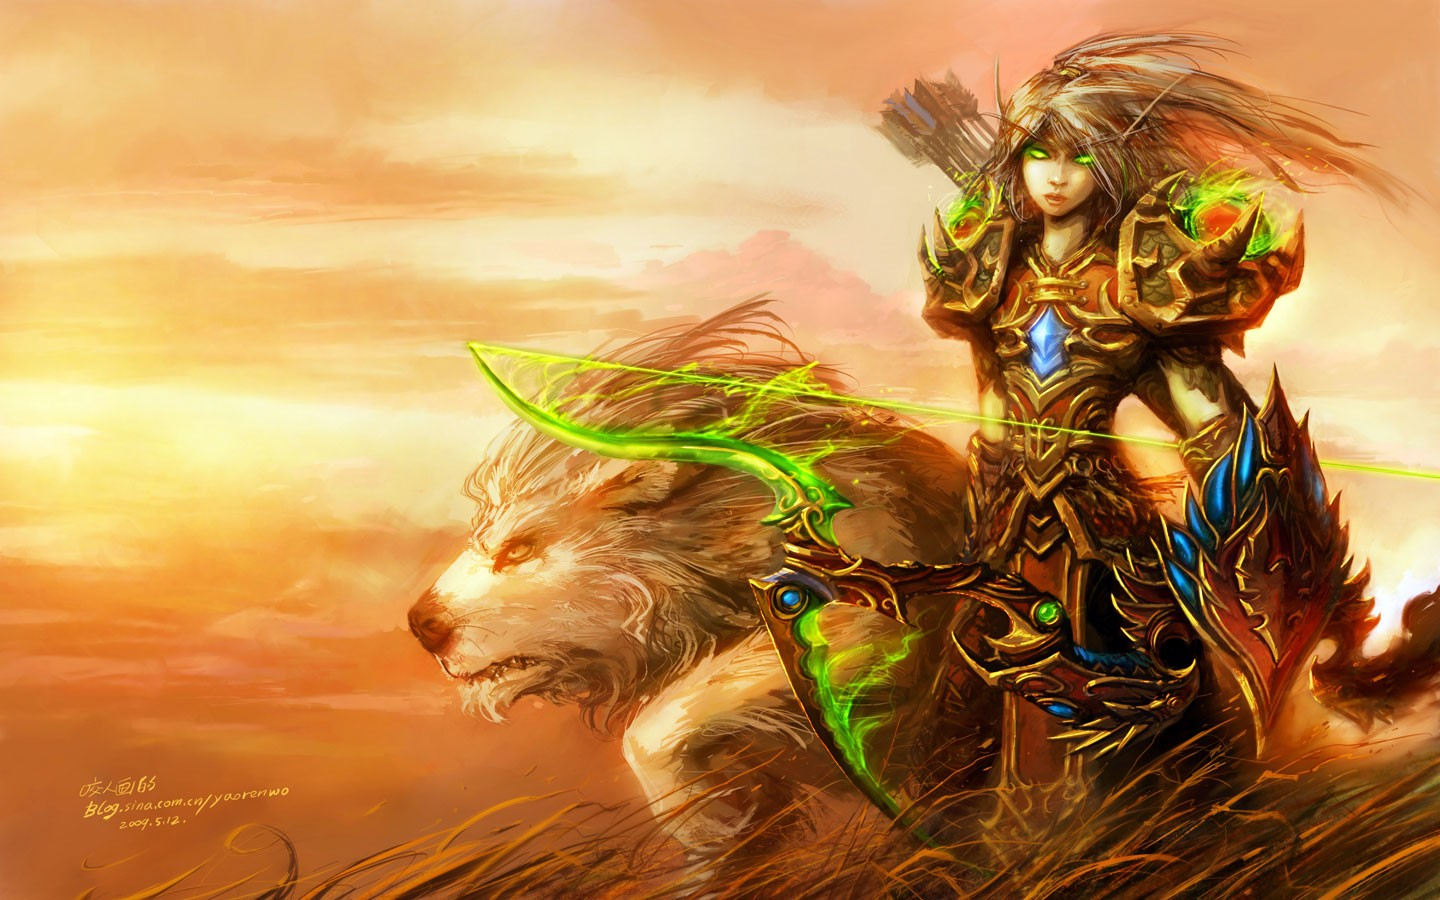 Blood Elf de World of Warcraft - 1440x900